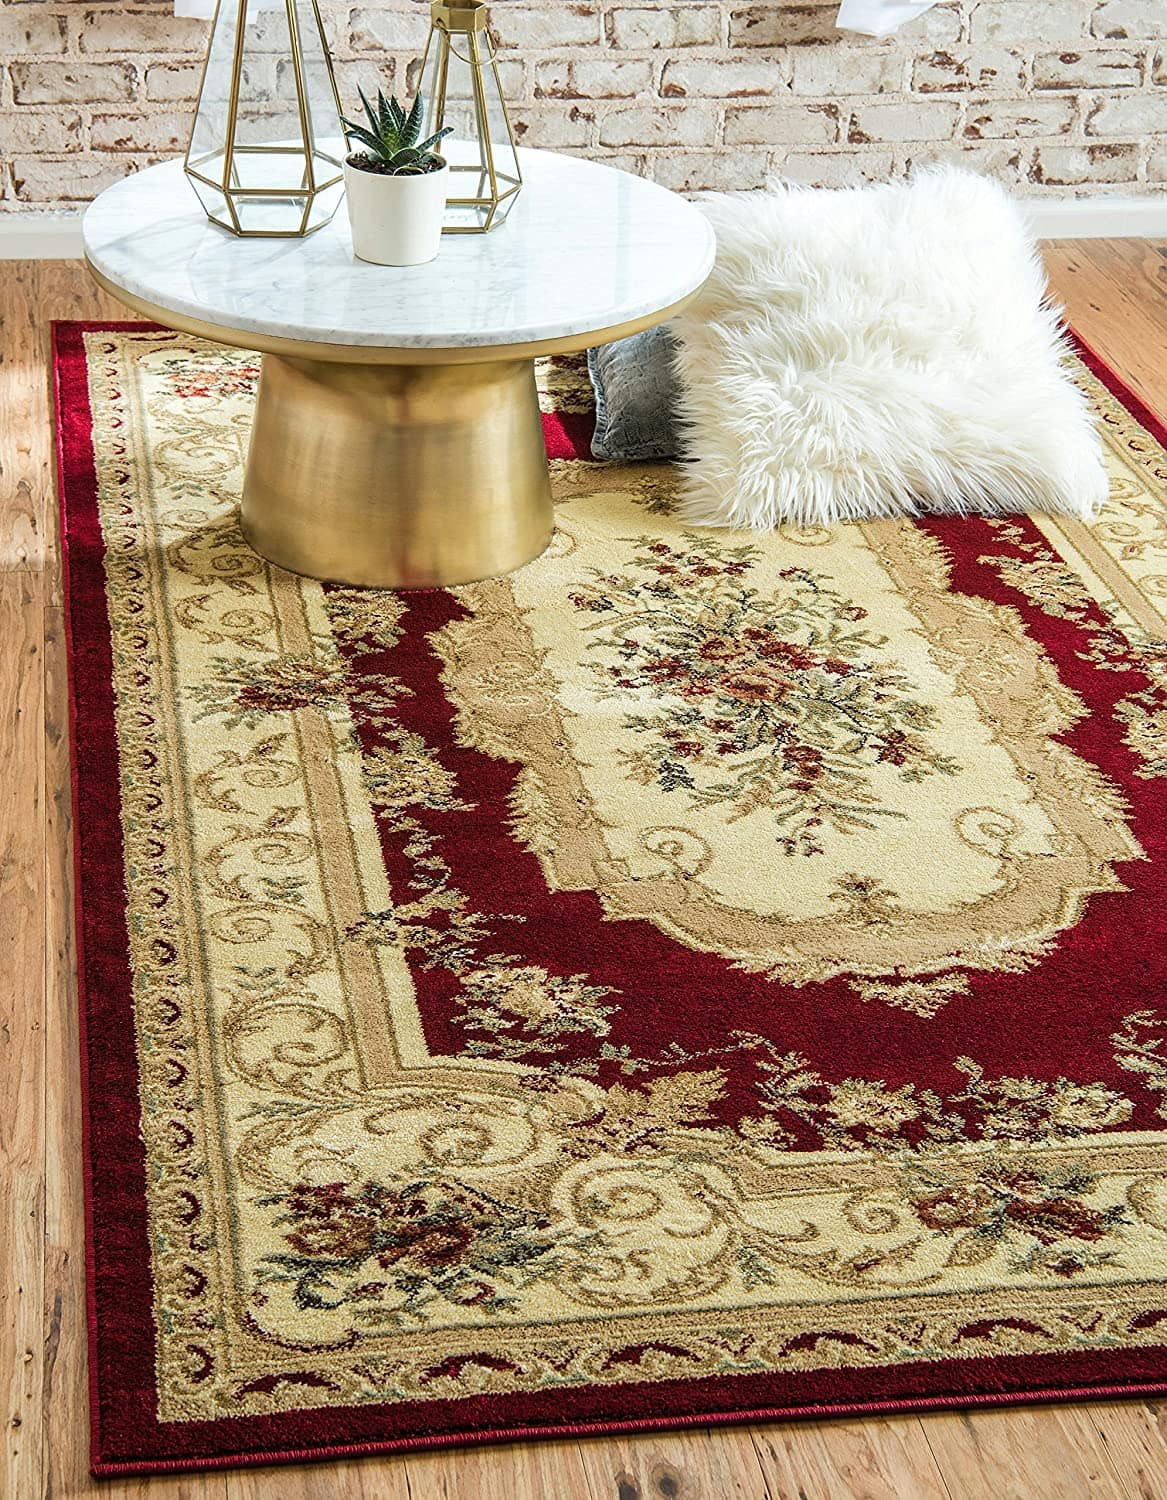 Unique Loom Versailles Collection Traditional Classic Red Area Rug (9' 0 x 12' 0) $109.84